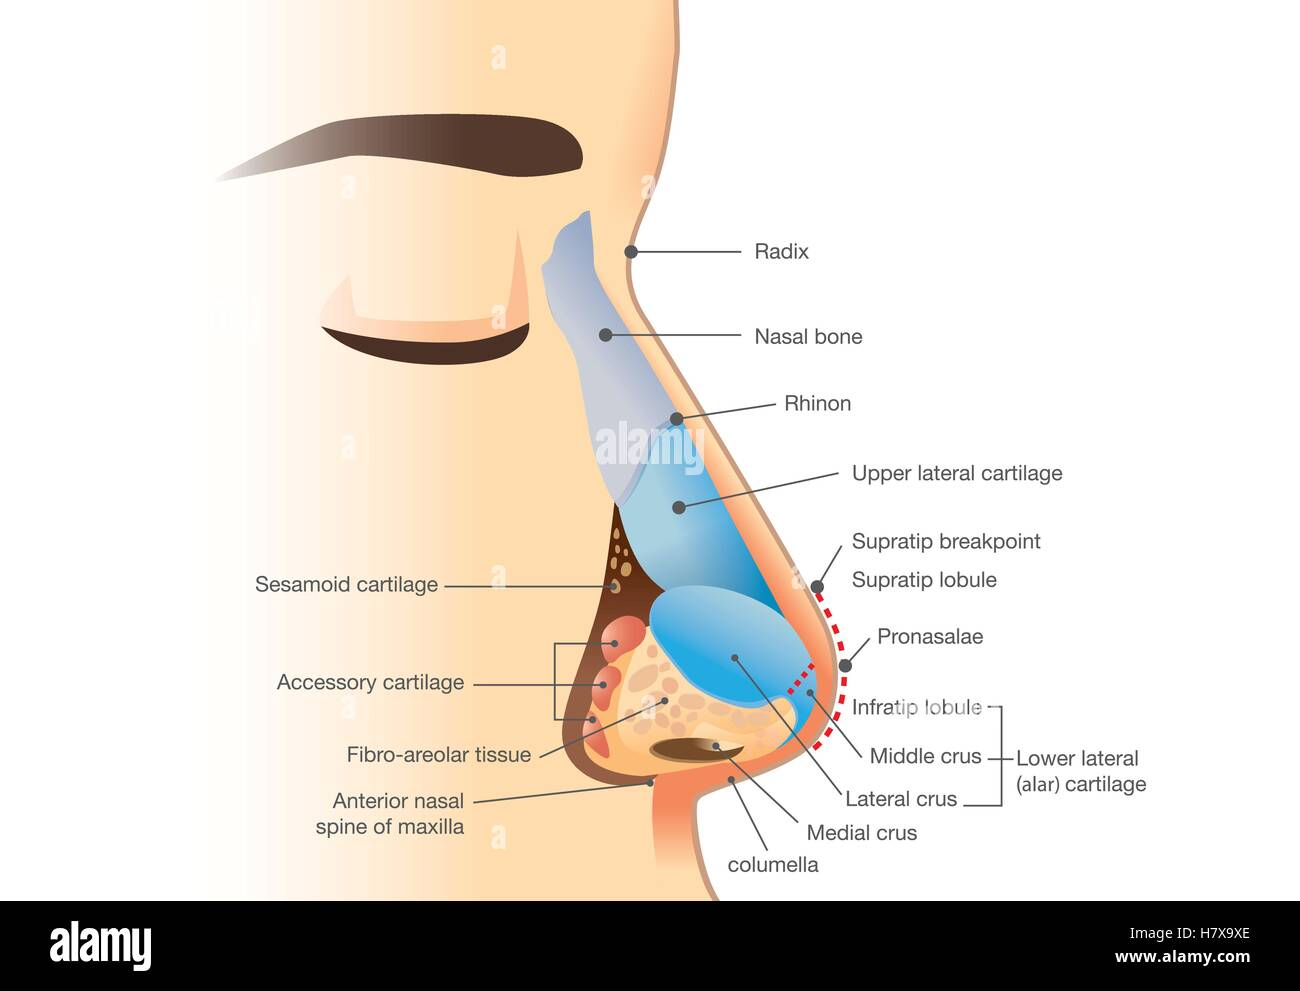 Anatomy Of Human Nose Stock Vector Art Illustration Vector Image